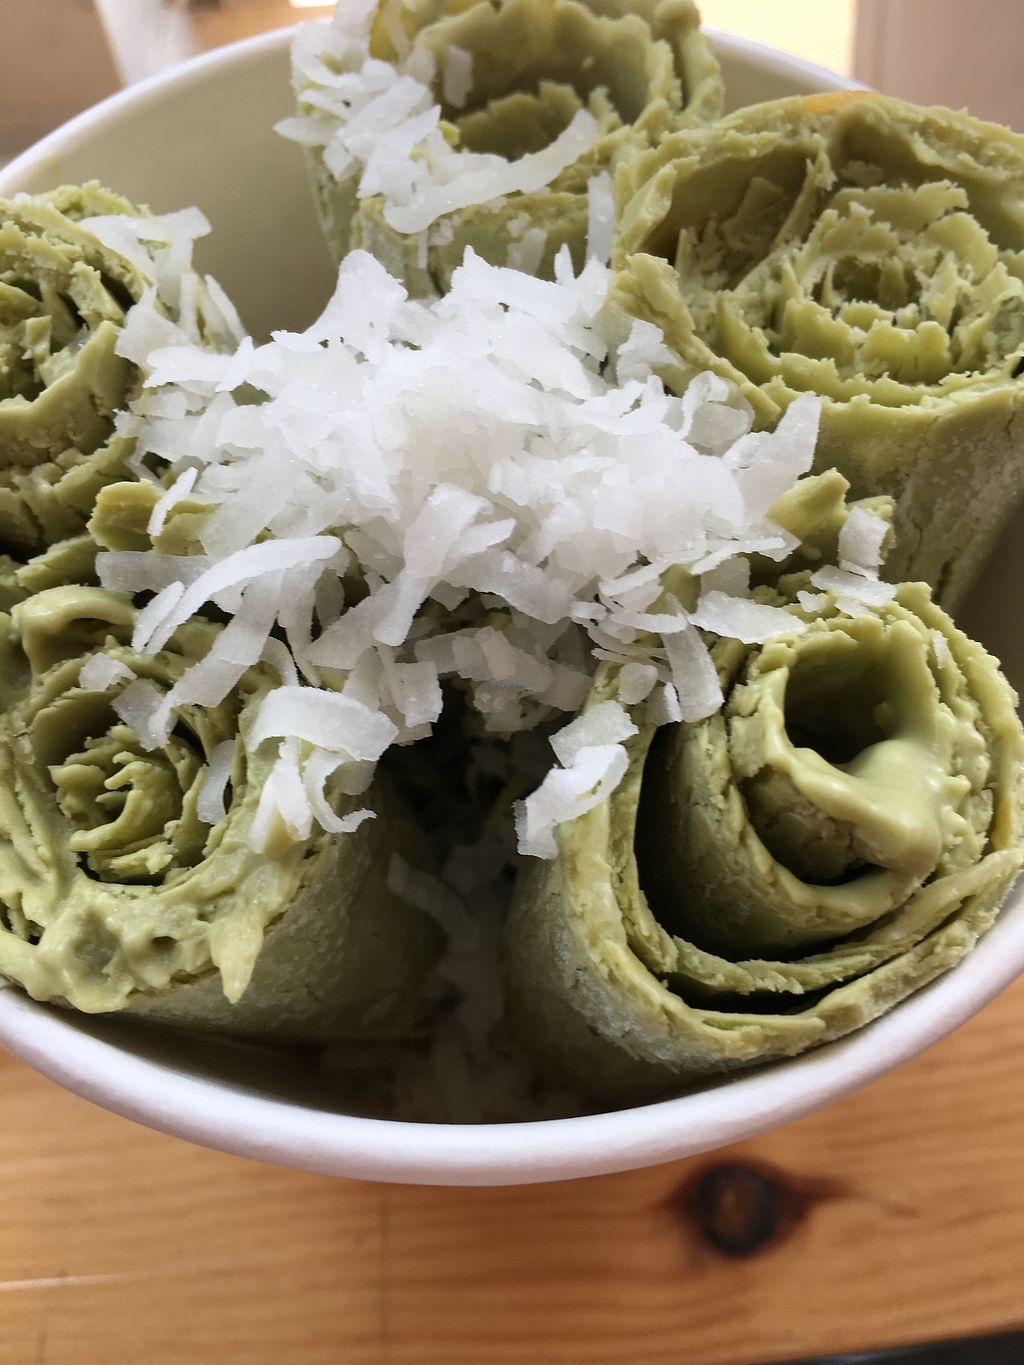 """Photo of Frozen Sweet  by <a href=""""/members/profile/cookiem"""">cookiem</a> <br/>Green tea vegan ice cream rolls <br/> July 31, 2017  - <a href='/contact/abuse/image/93800/287217'>Report</a>"""